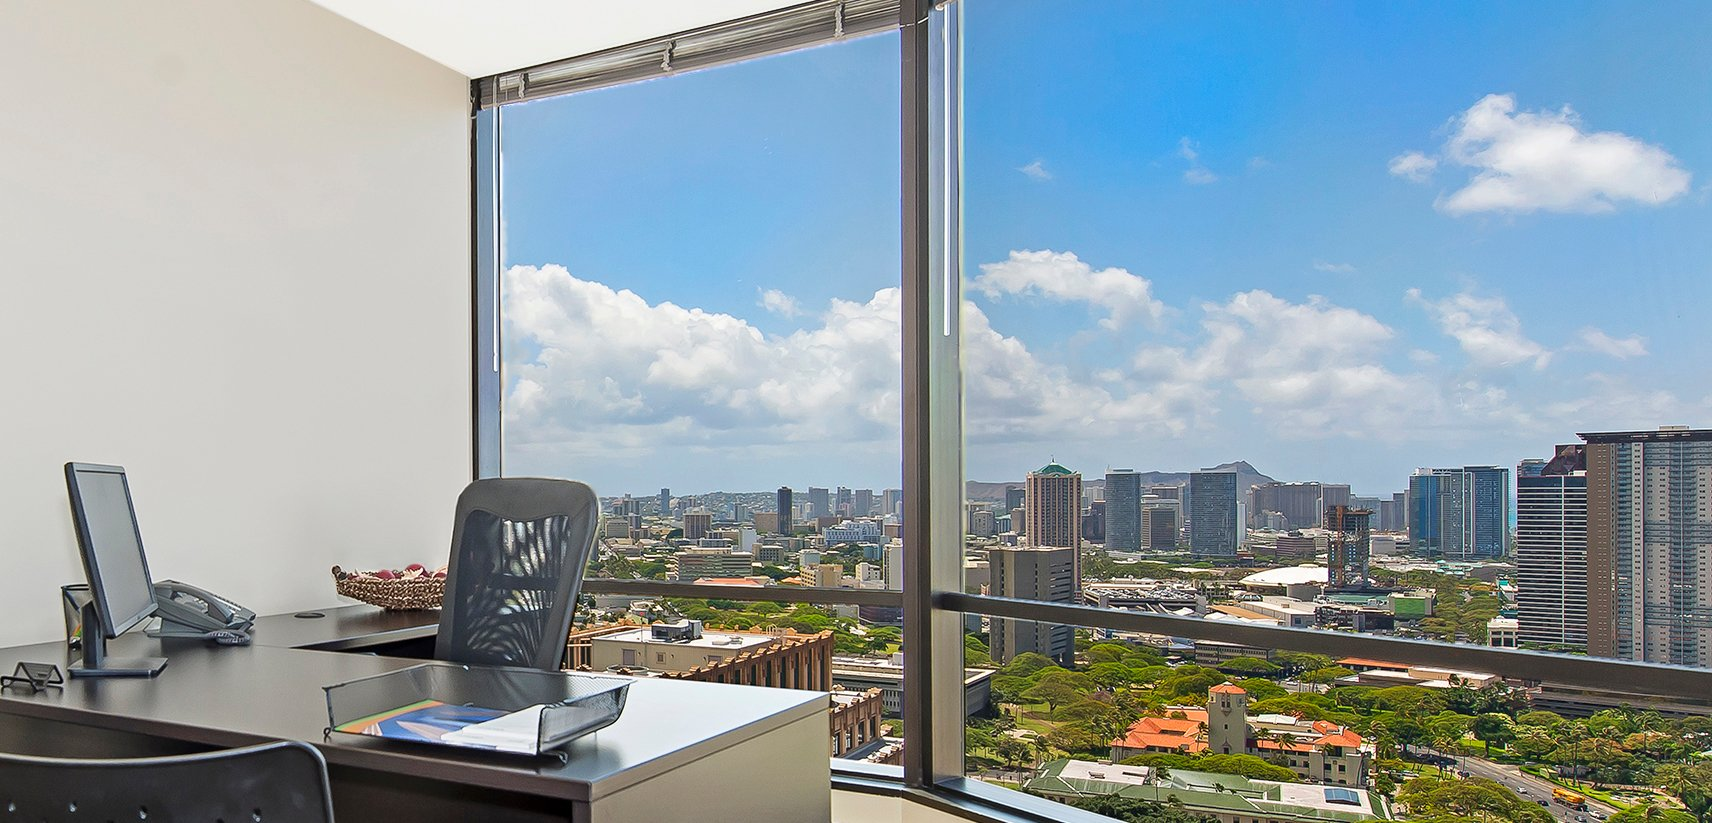 Private office space with view of city